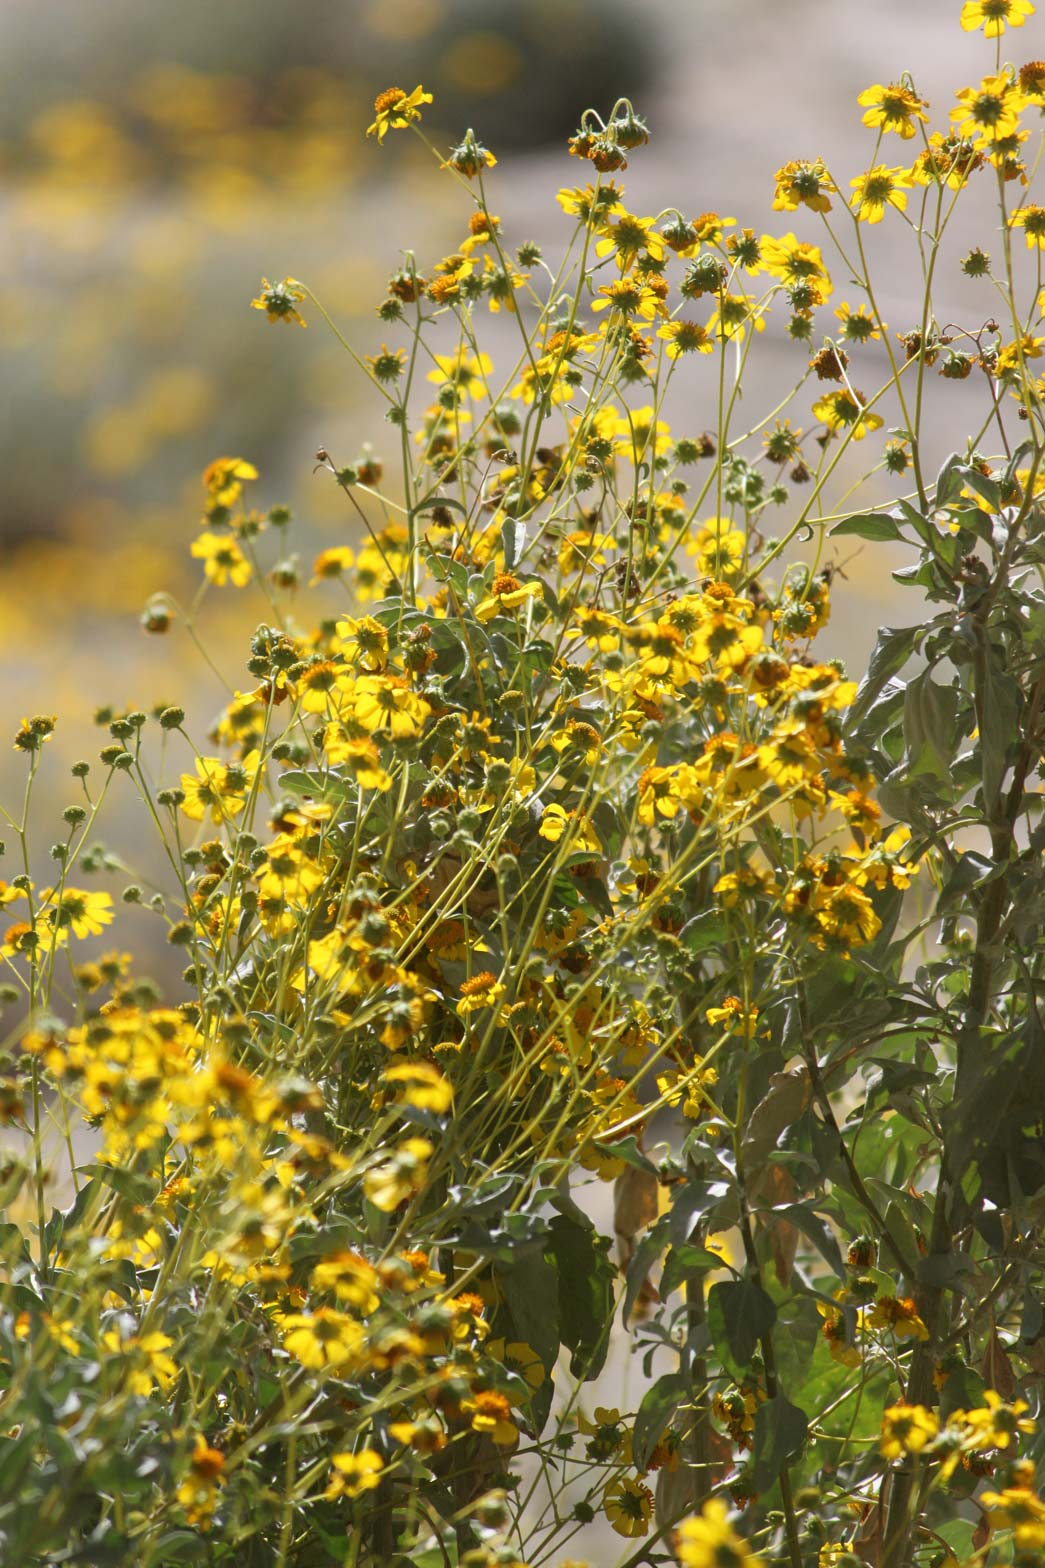 A Brittlebush with yellow blooms in the Wildflower Field at Sunnylands Center & Gardens.